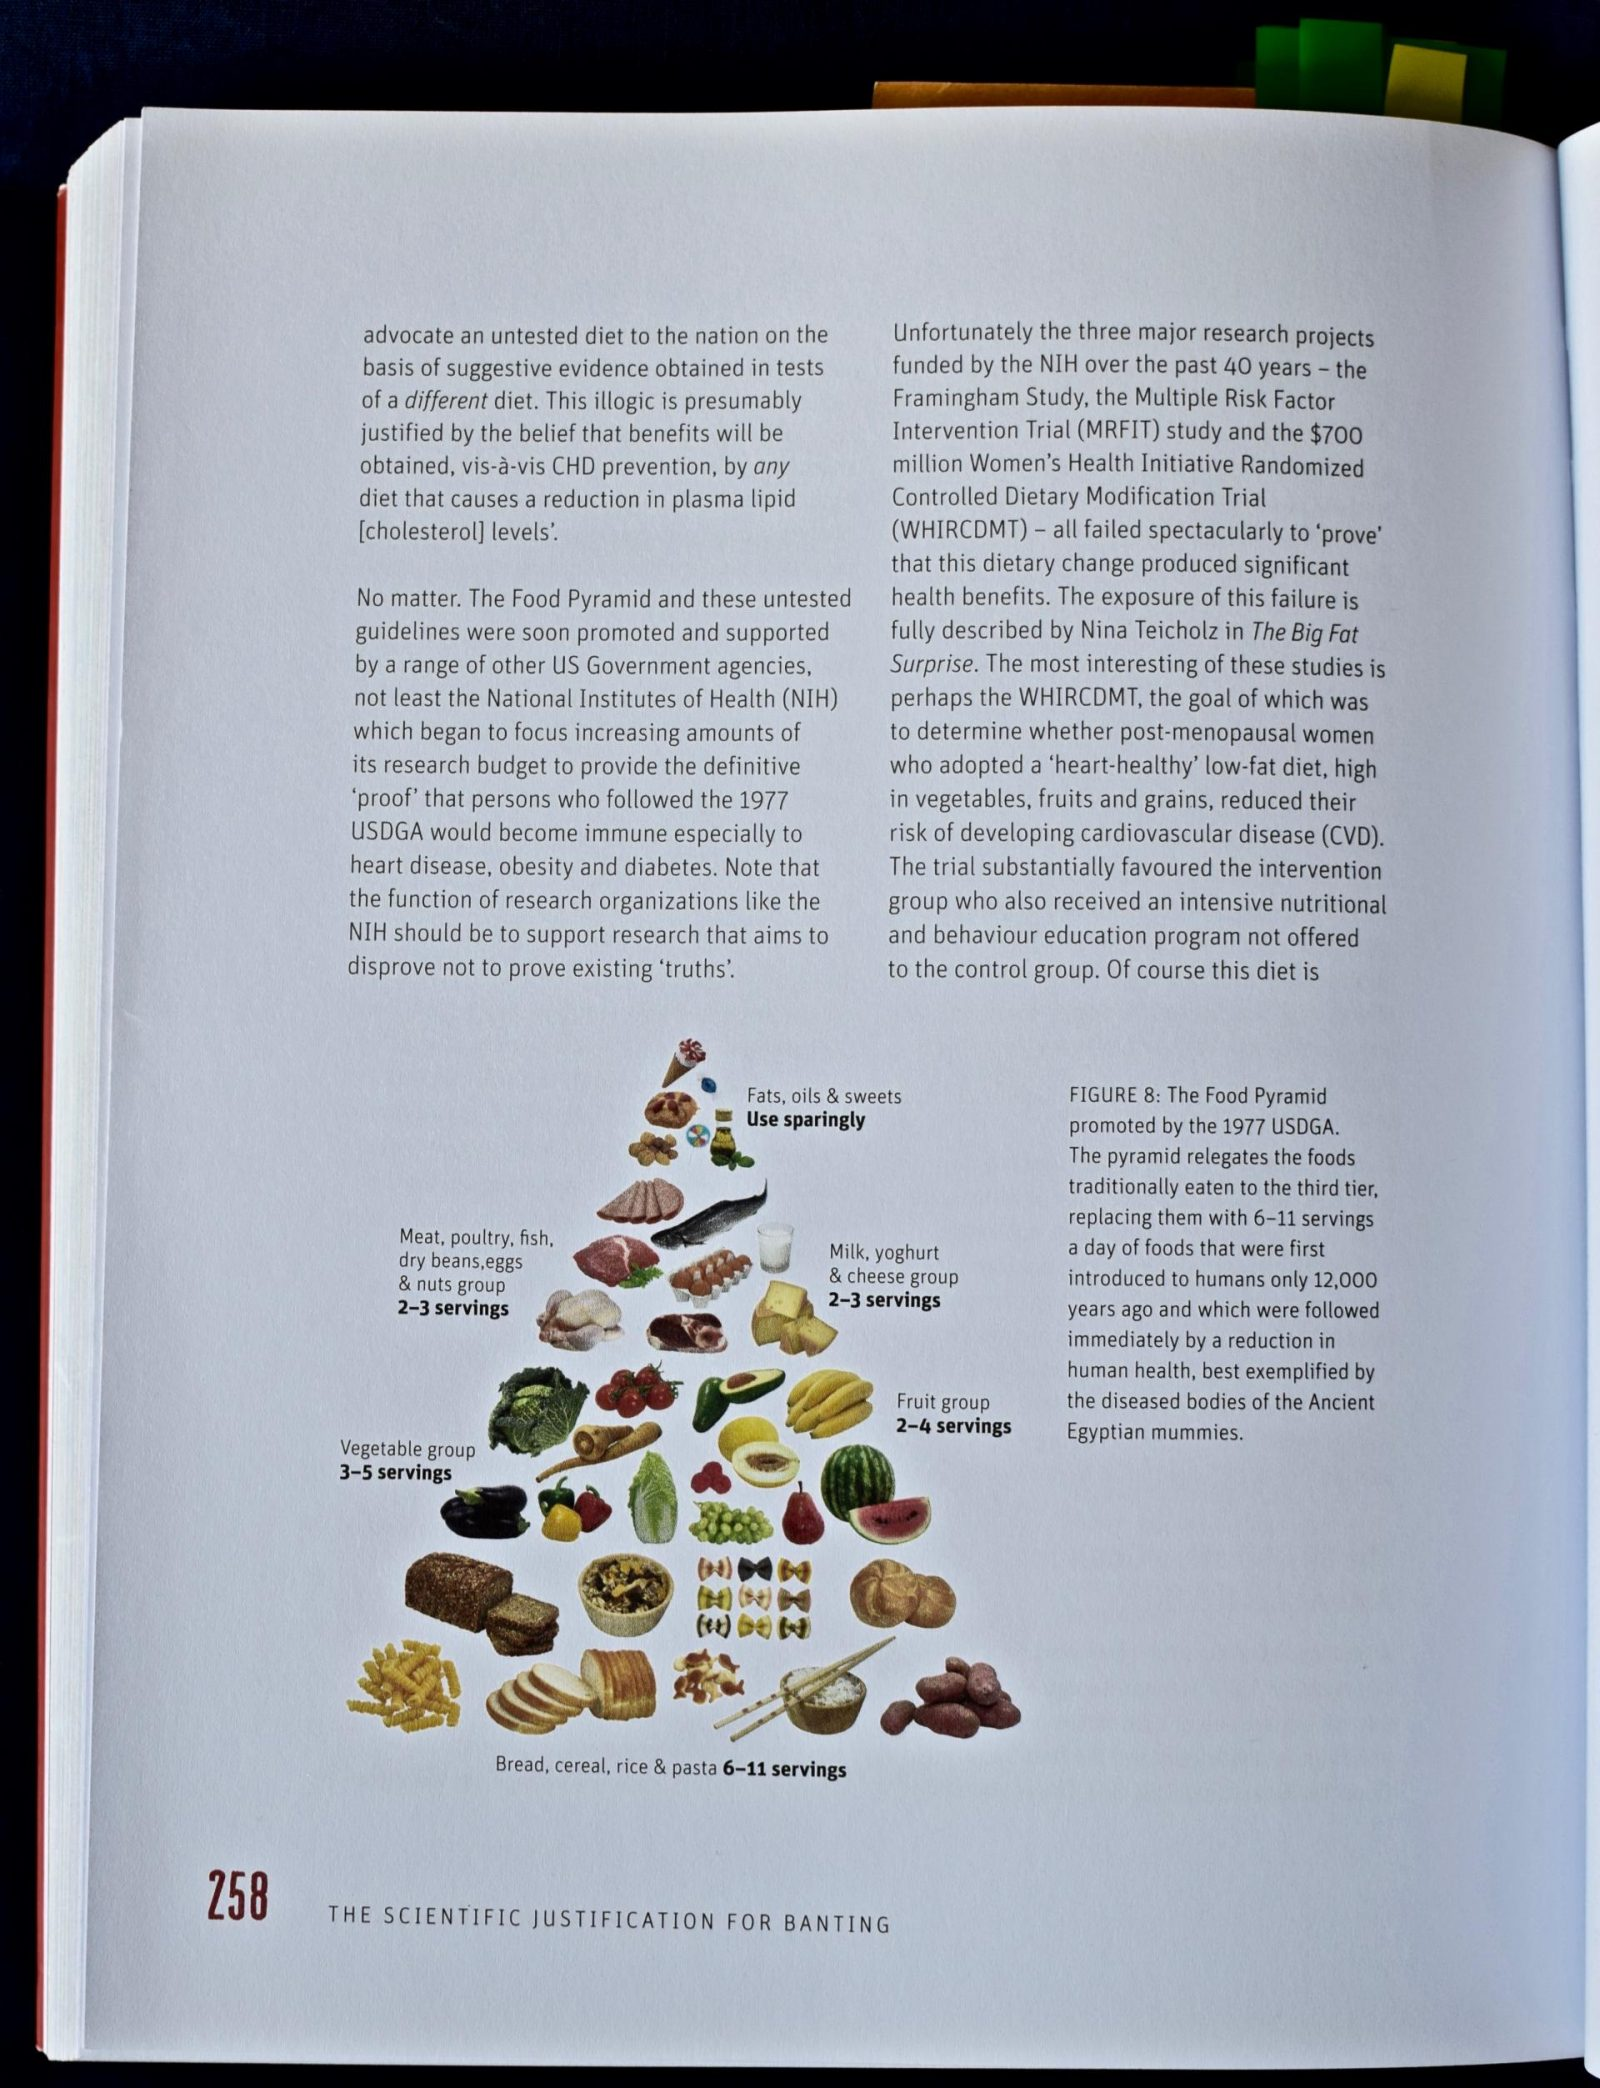 Real meal pyramid page